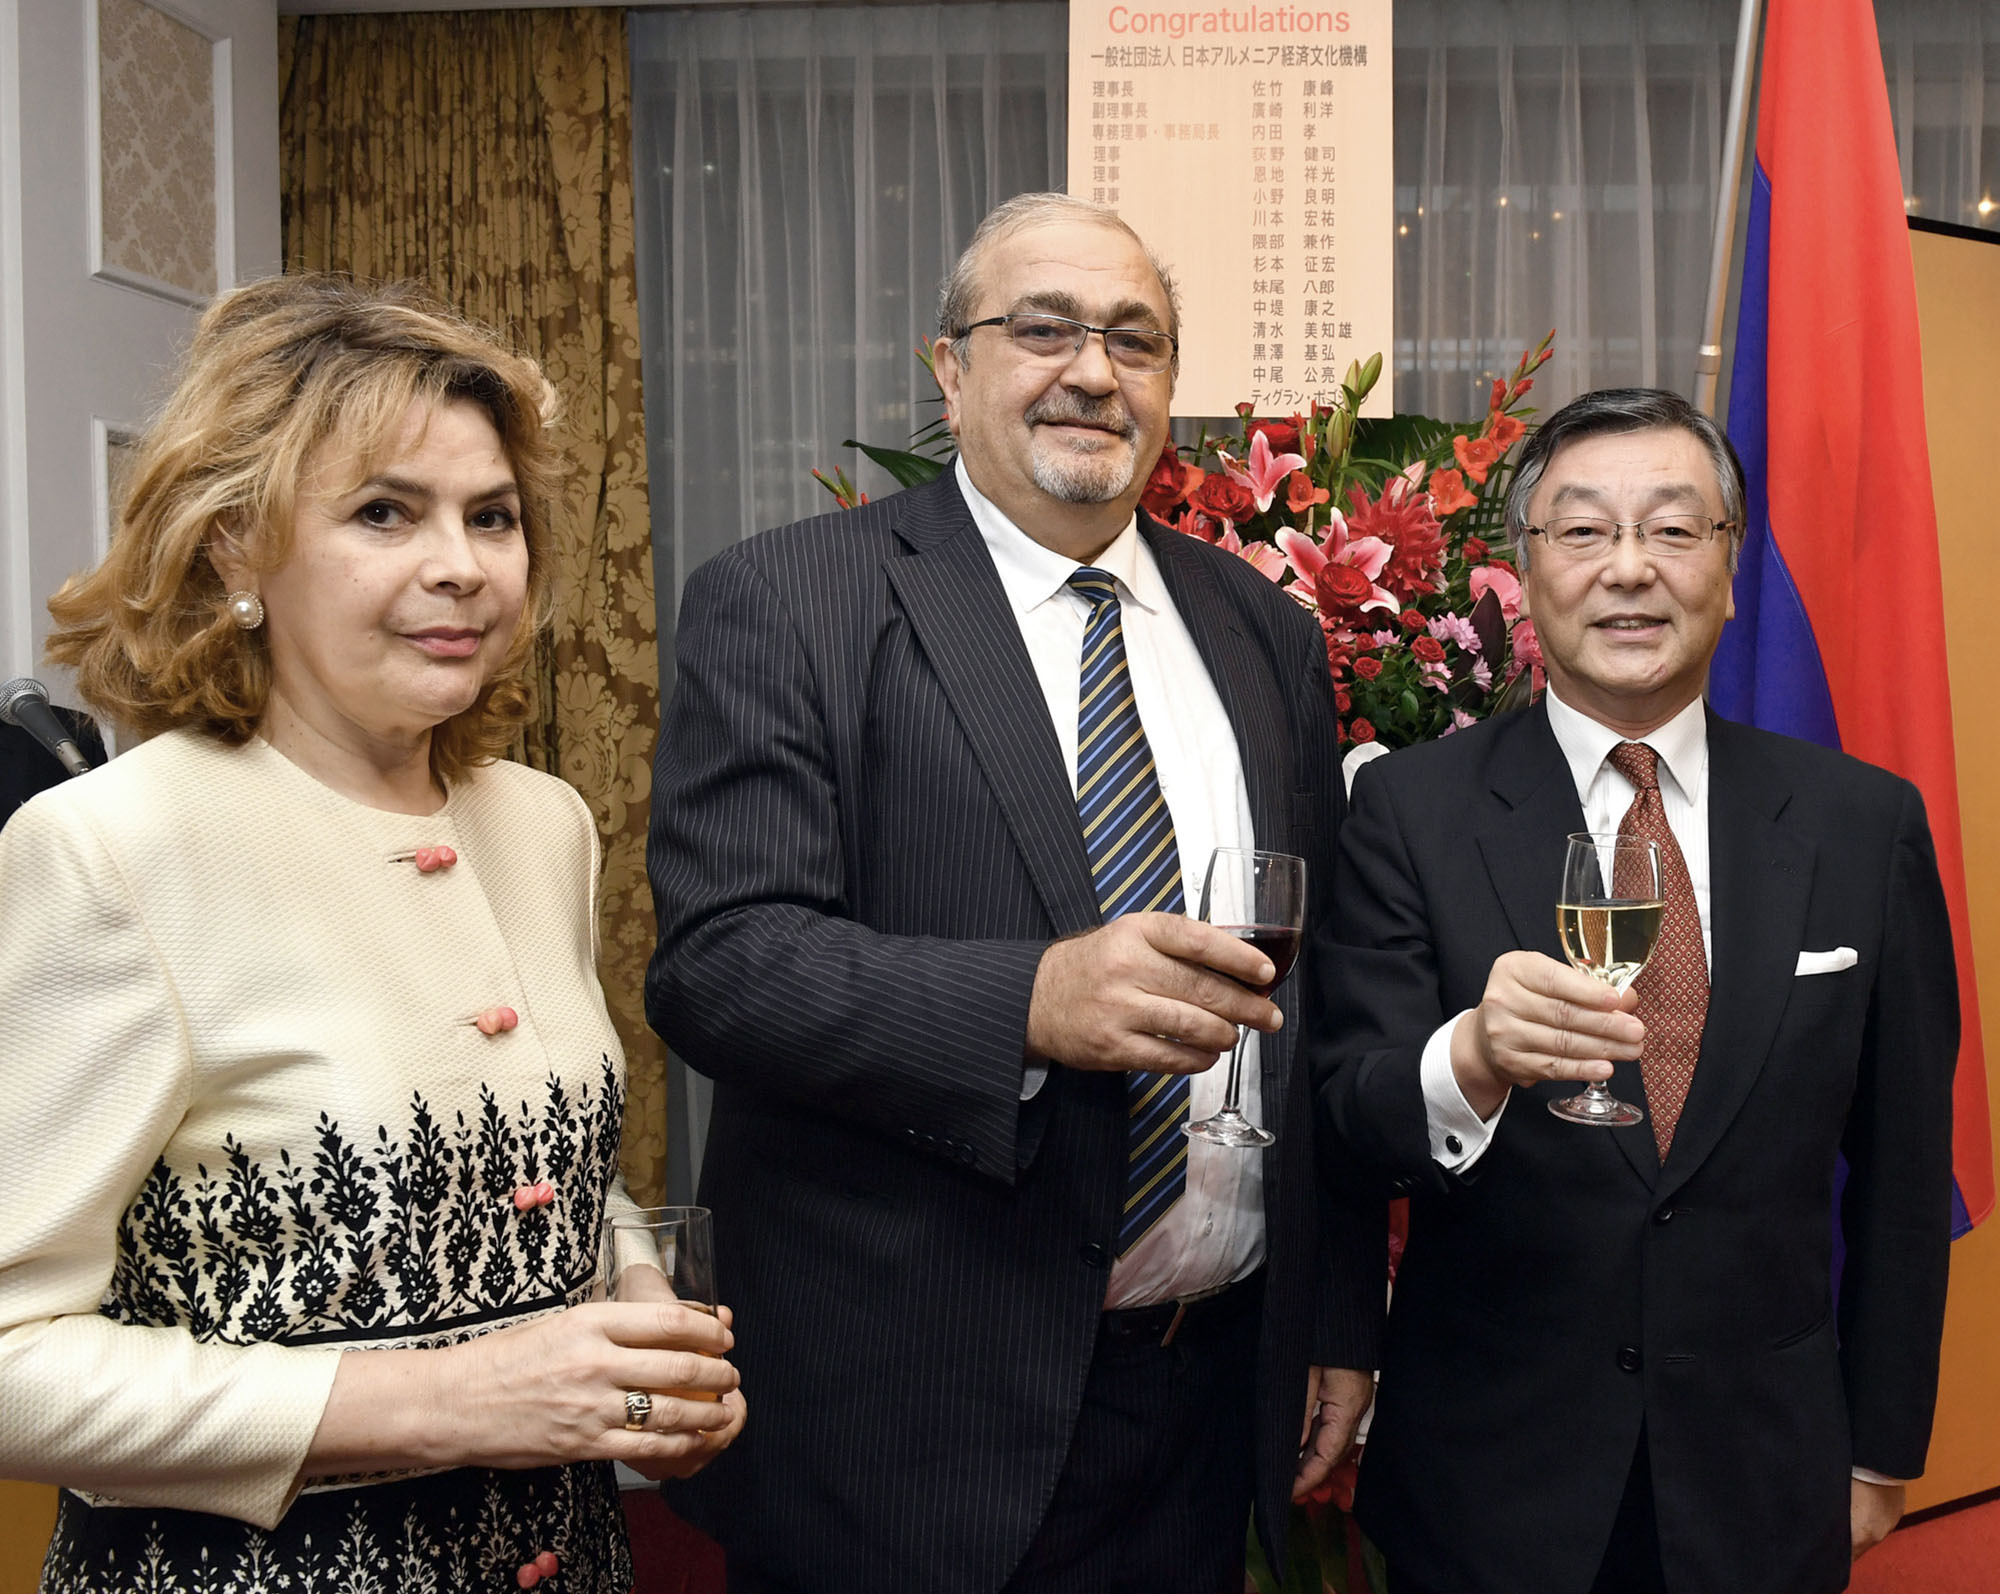 Armenian Ambassador Grant Pogosyan (center) and his wife, Natalia, pose for a photo with Yasumine Satake, president of the Japan-Armenia Business and Culture Initiative, during a reception to celebrate the 26th anniversary of Armenia's independence at Hotel Okura, Tokyo on Sept. 21. |  YOSHIAKI MIURA